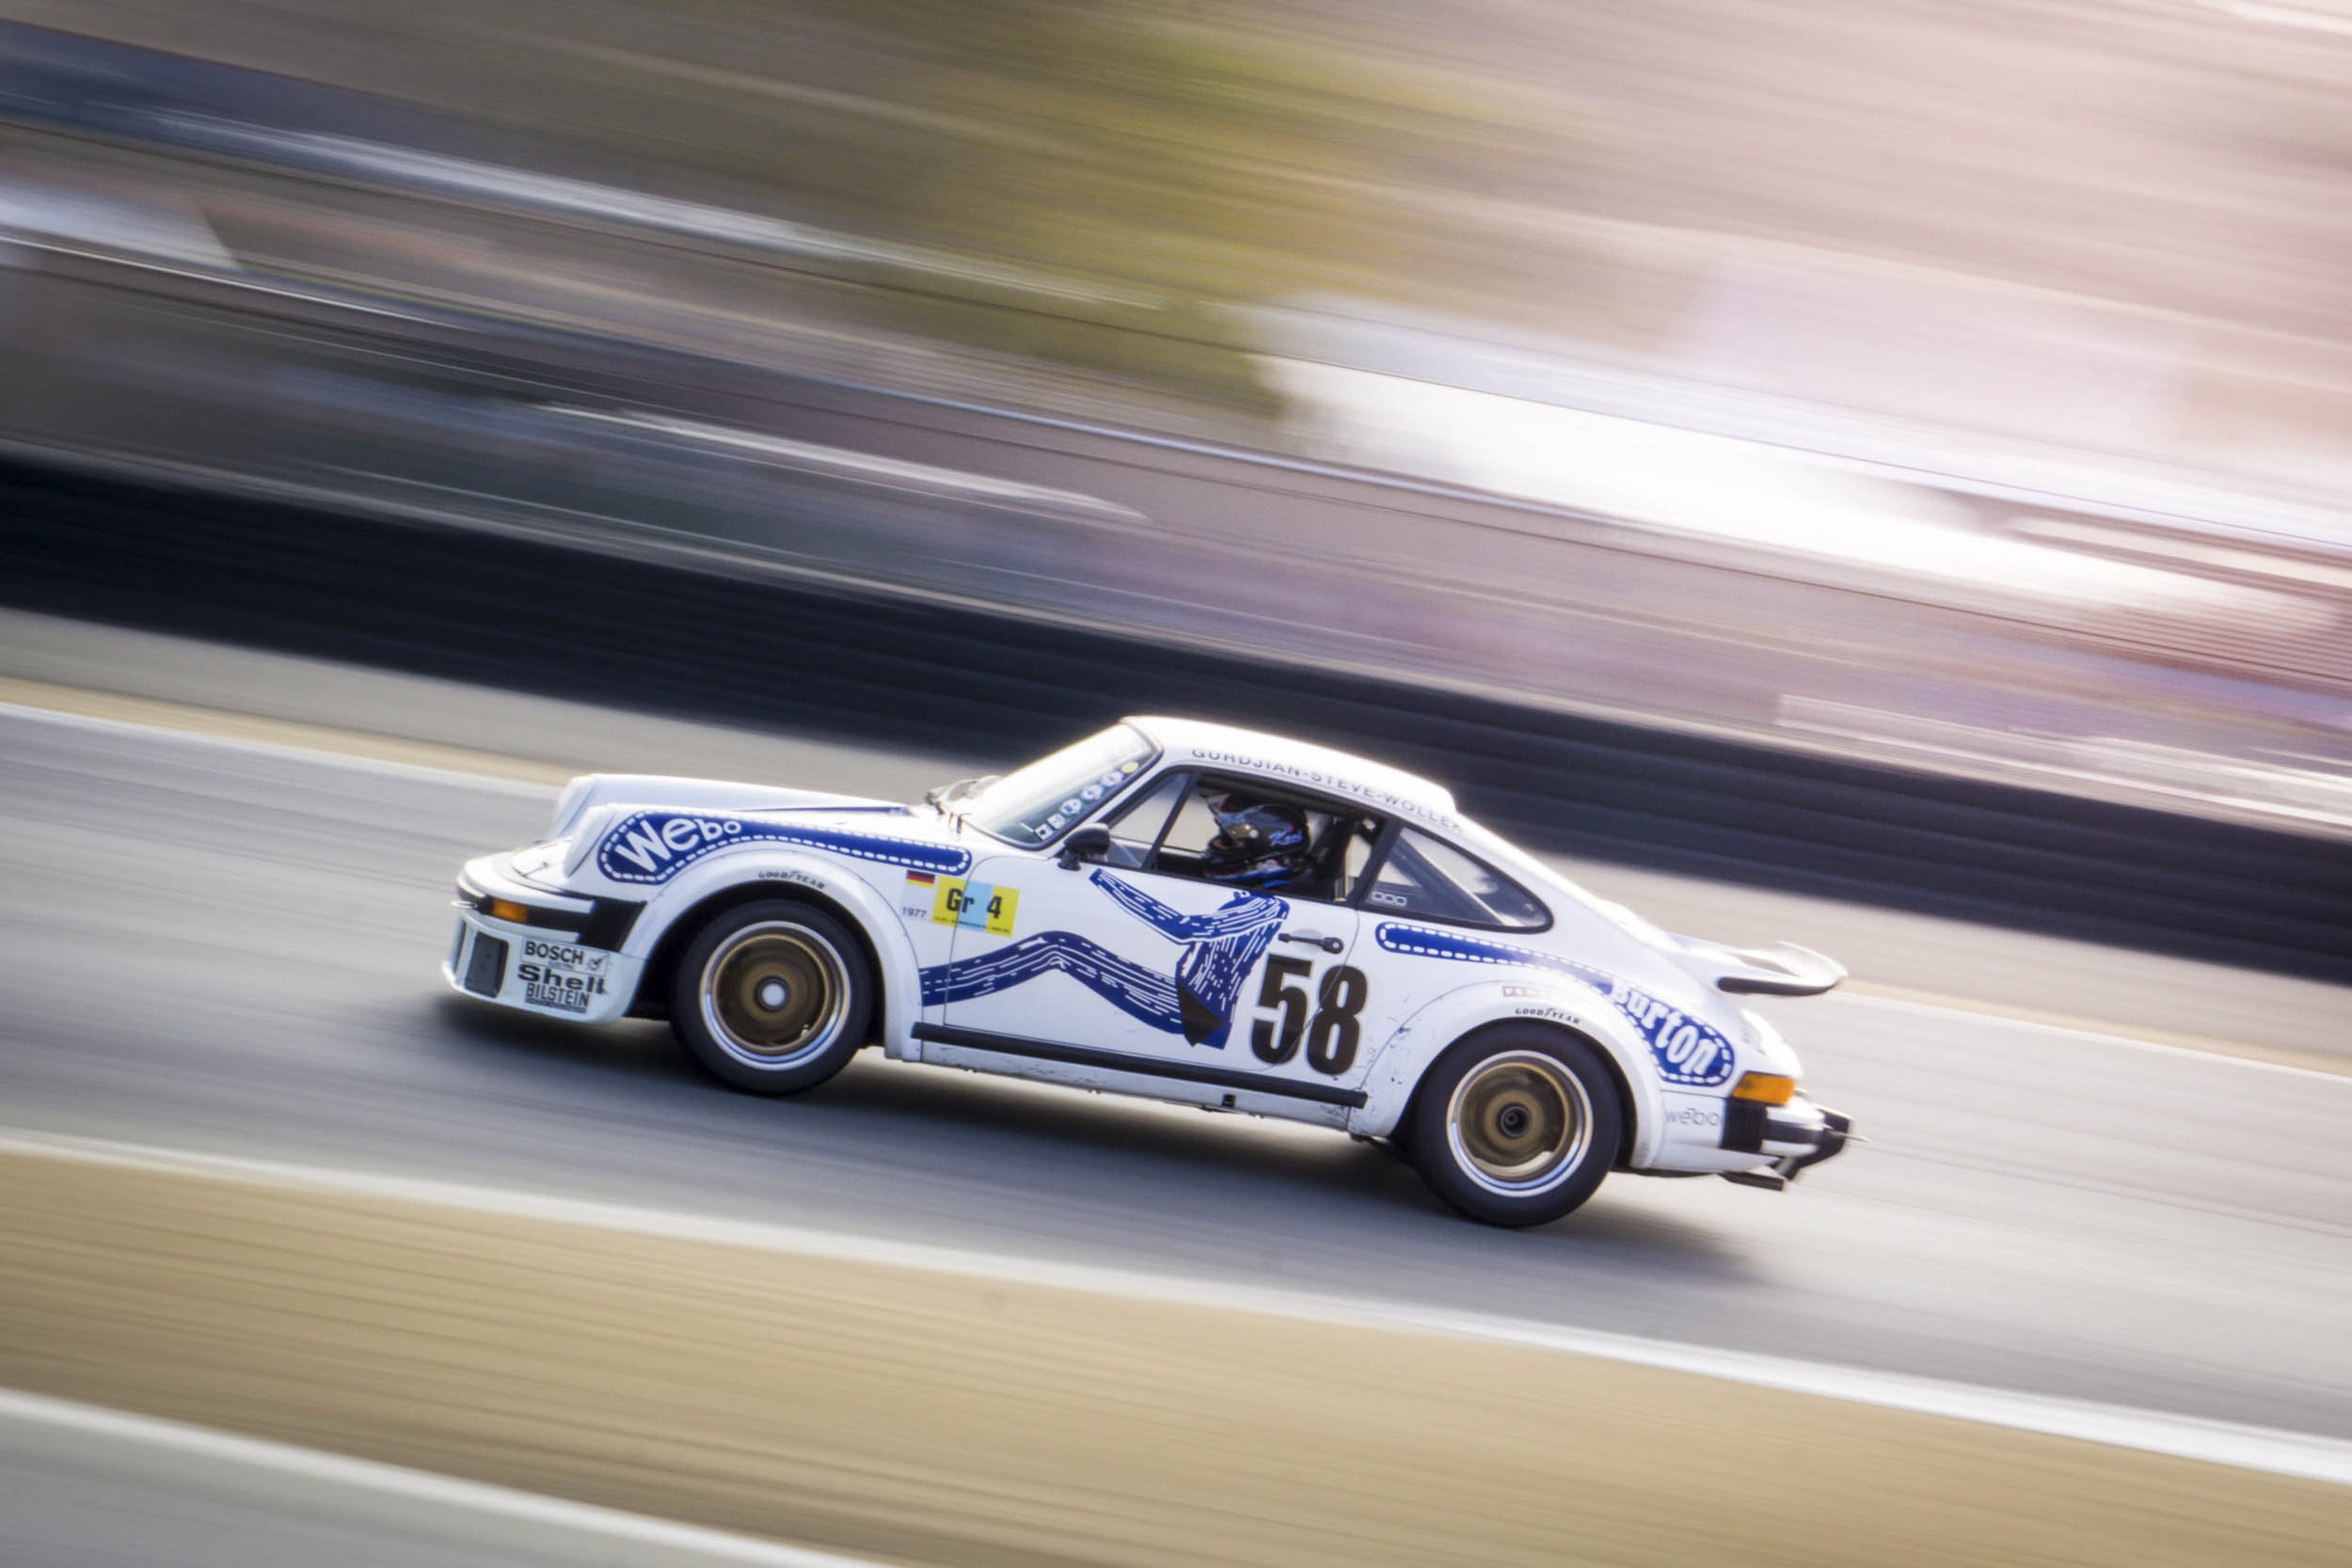 1976 Porsche 943 Randal Smalley